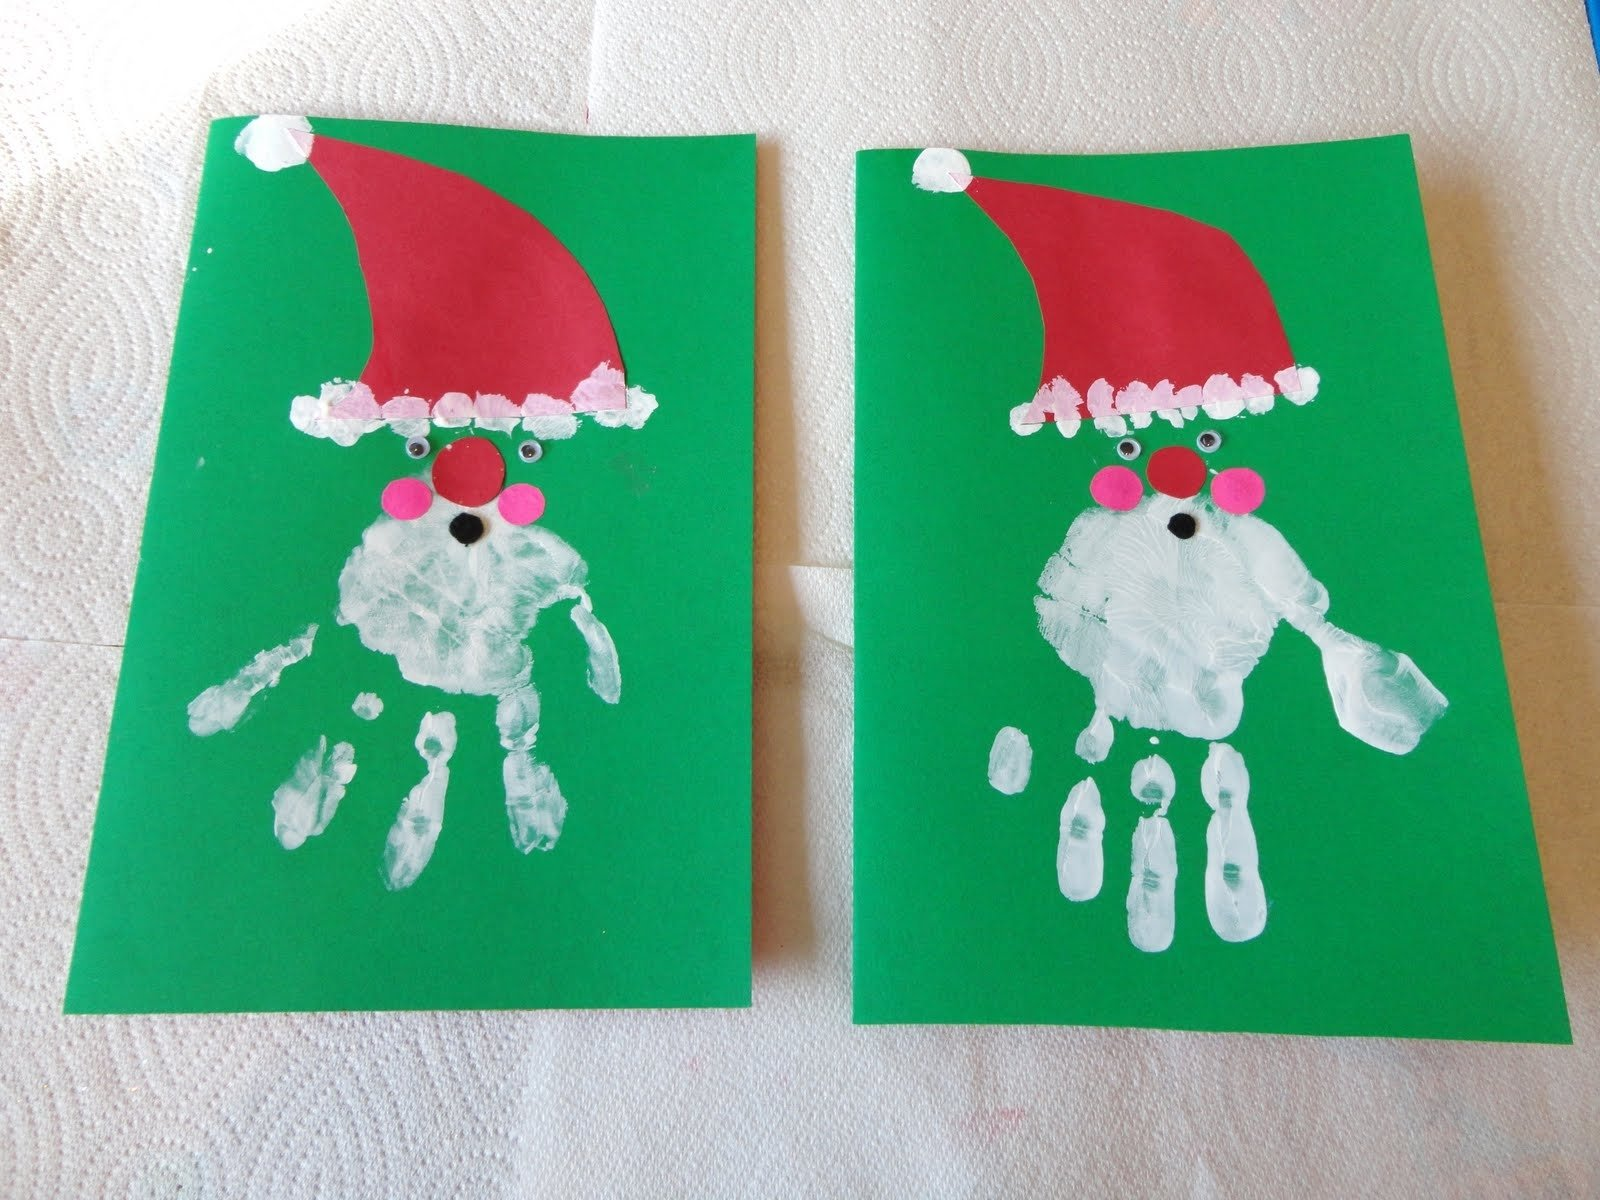 10 Attractive Christmas Card Ideas For Kids christmas card ideas for kids happy holidays 2021